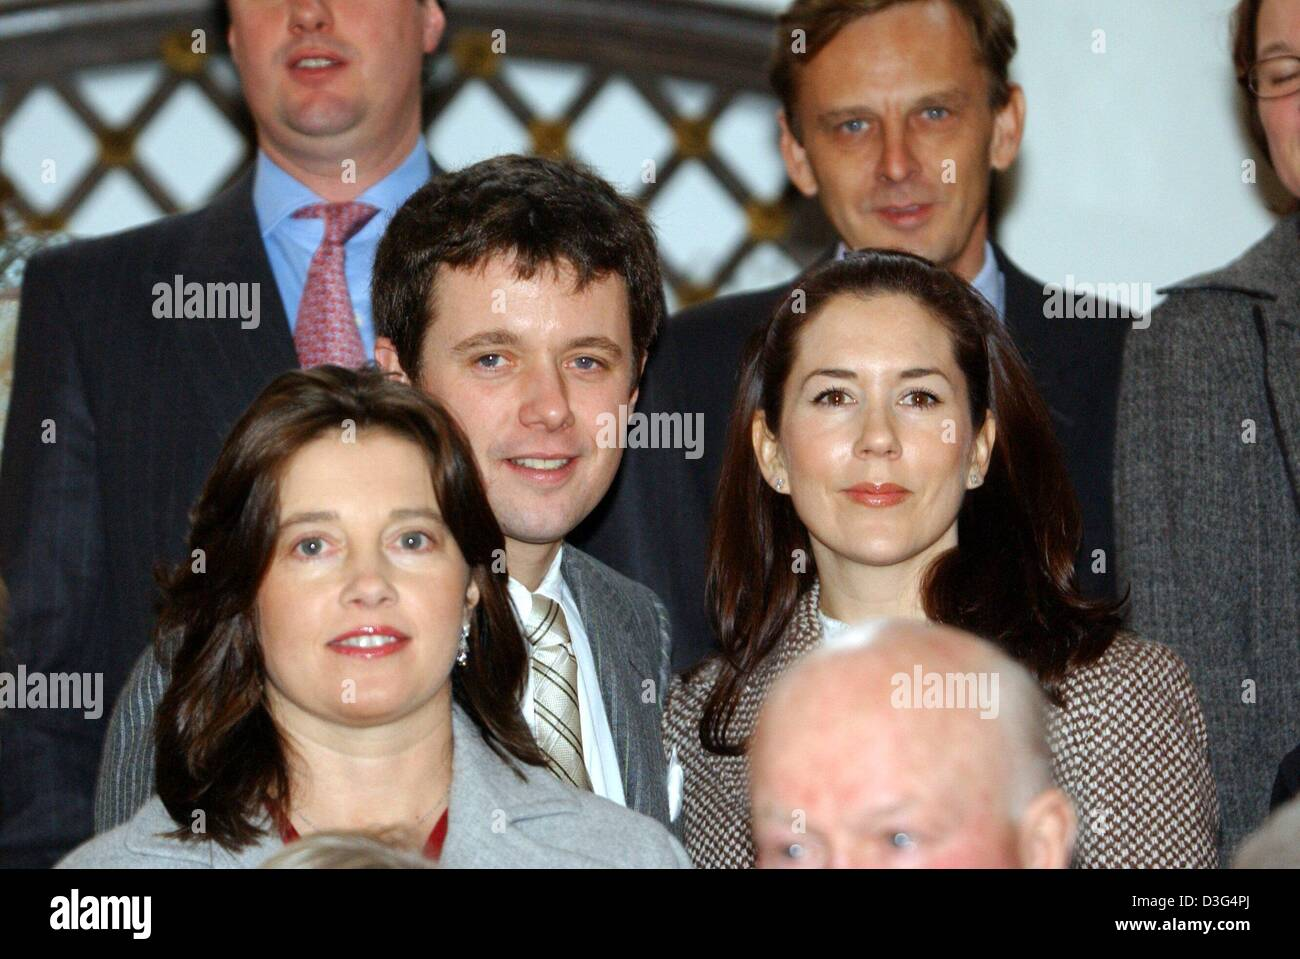 dpa-crown-prince-frederik-of-denmark-and-his-fiancee-mary-donaldson-D3G4PJ.jpg